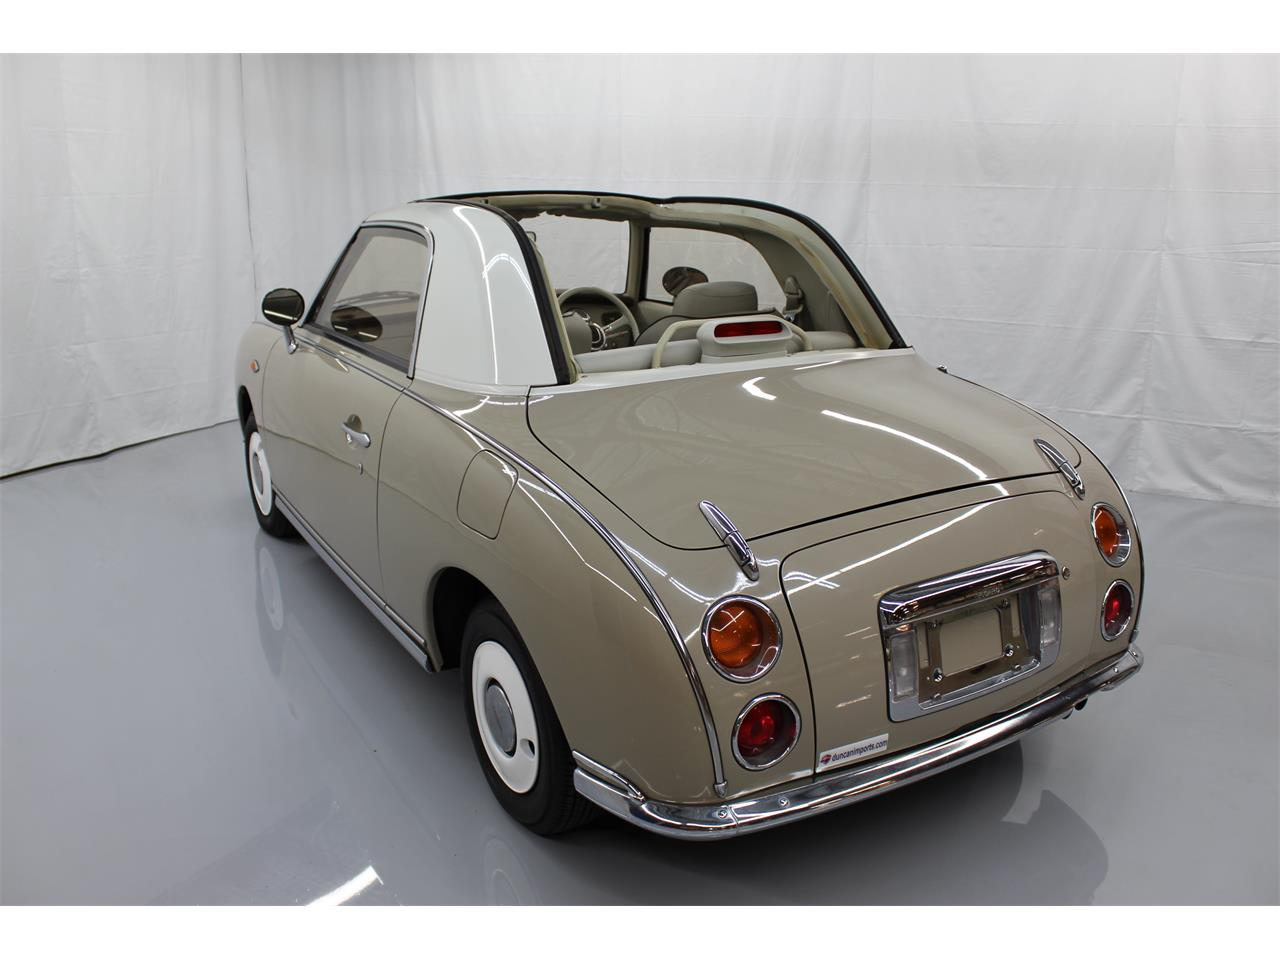 1991 Nissan Figaro for sale in Christiansburg, VA – photo 14